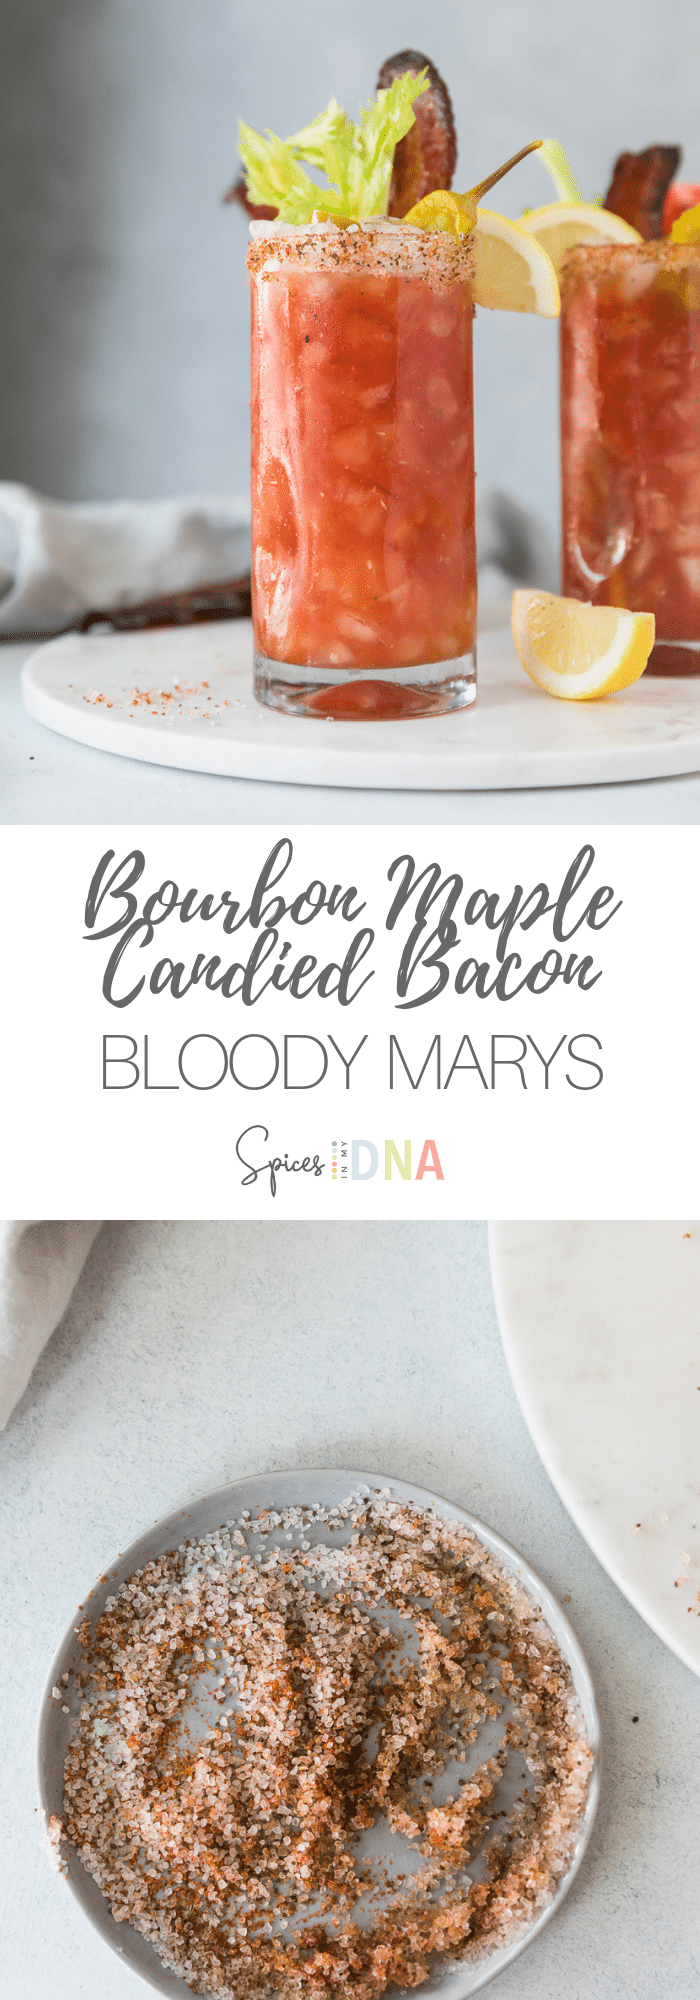 This take on a classic Bloody Mary is made even better with insanely delicious bourbon maple candied bacon, and a super flavorful salty rim! They're such a crowd pleaser at brunch, and they're great to entertain with too! #bloodymary #cocktail #brunch #candiedbacon